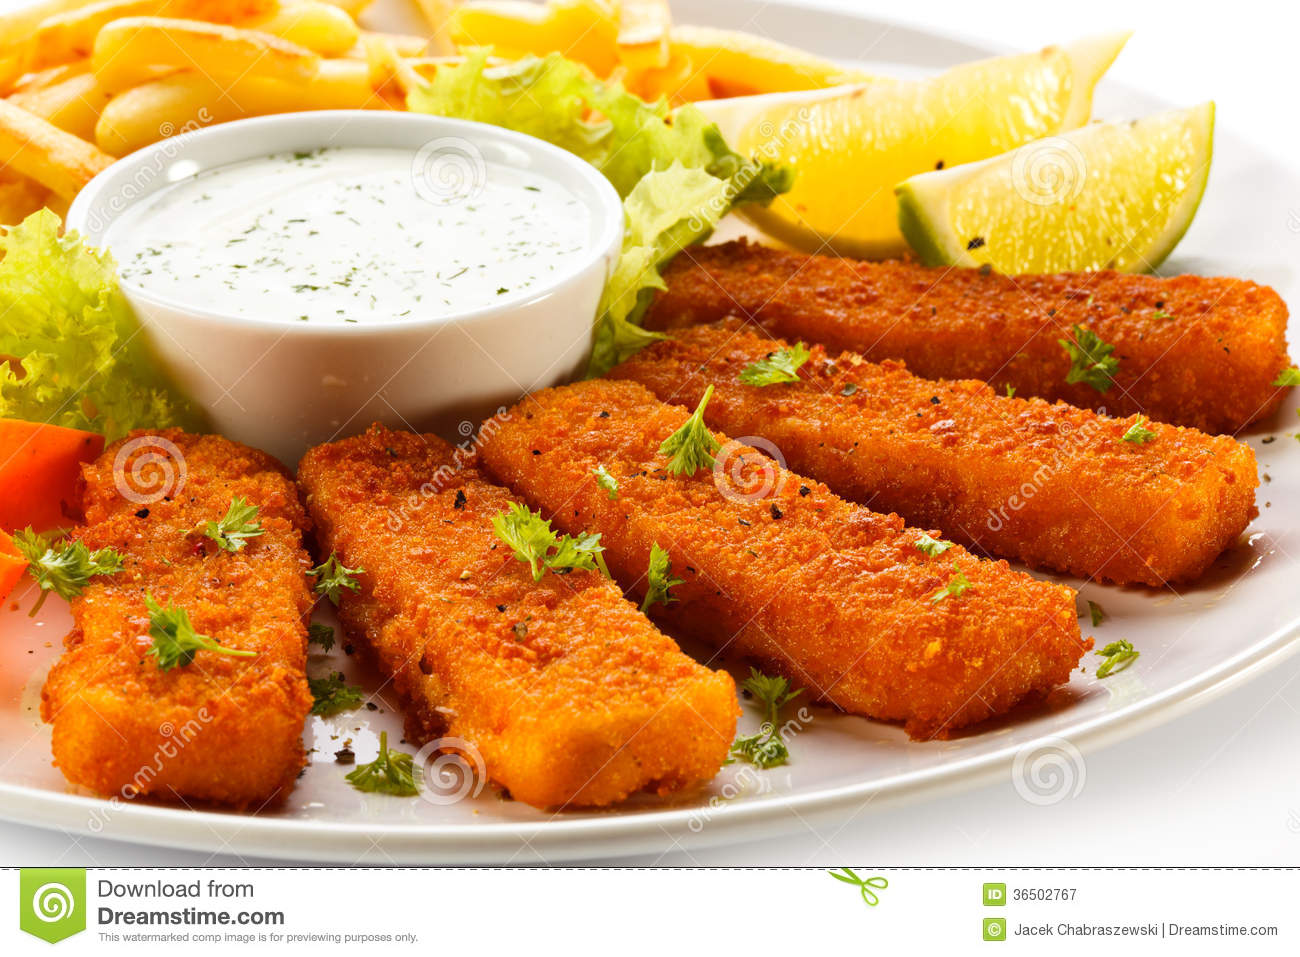 Fried fish fingers royalty free stock photography image for What vegetables go with fish